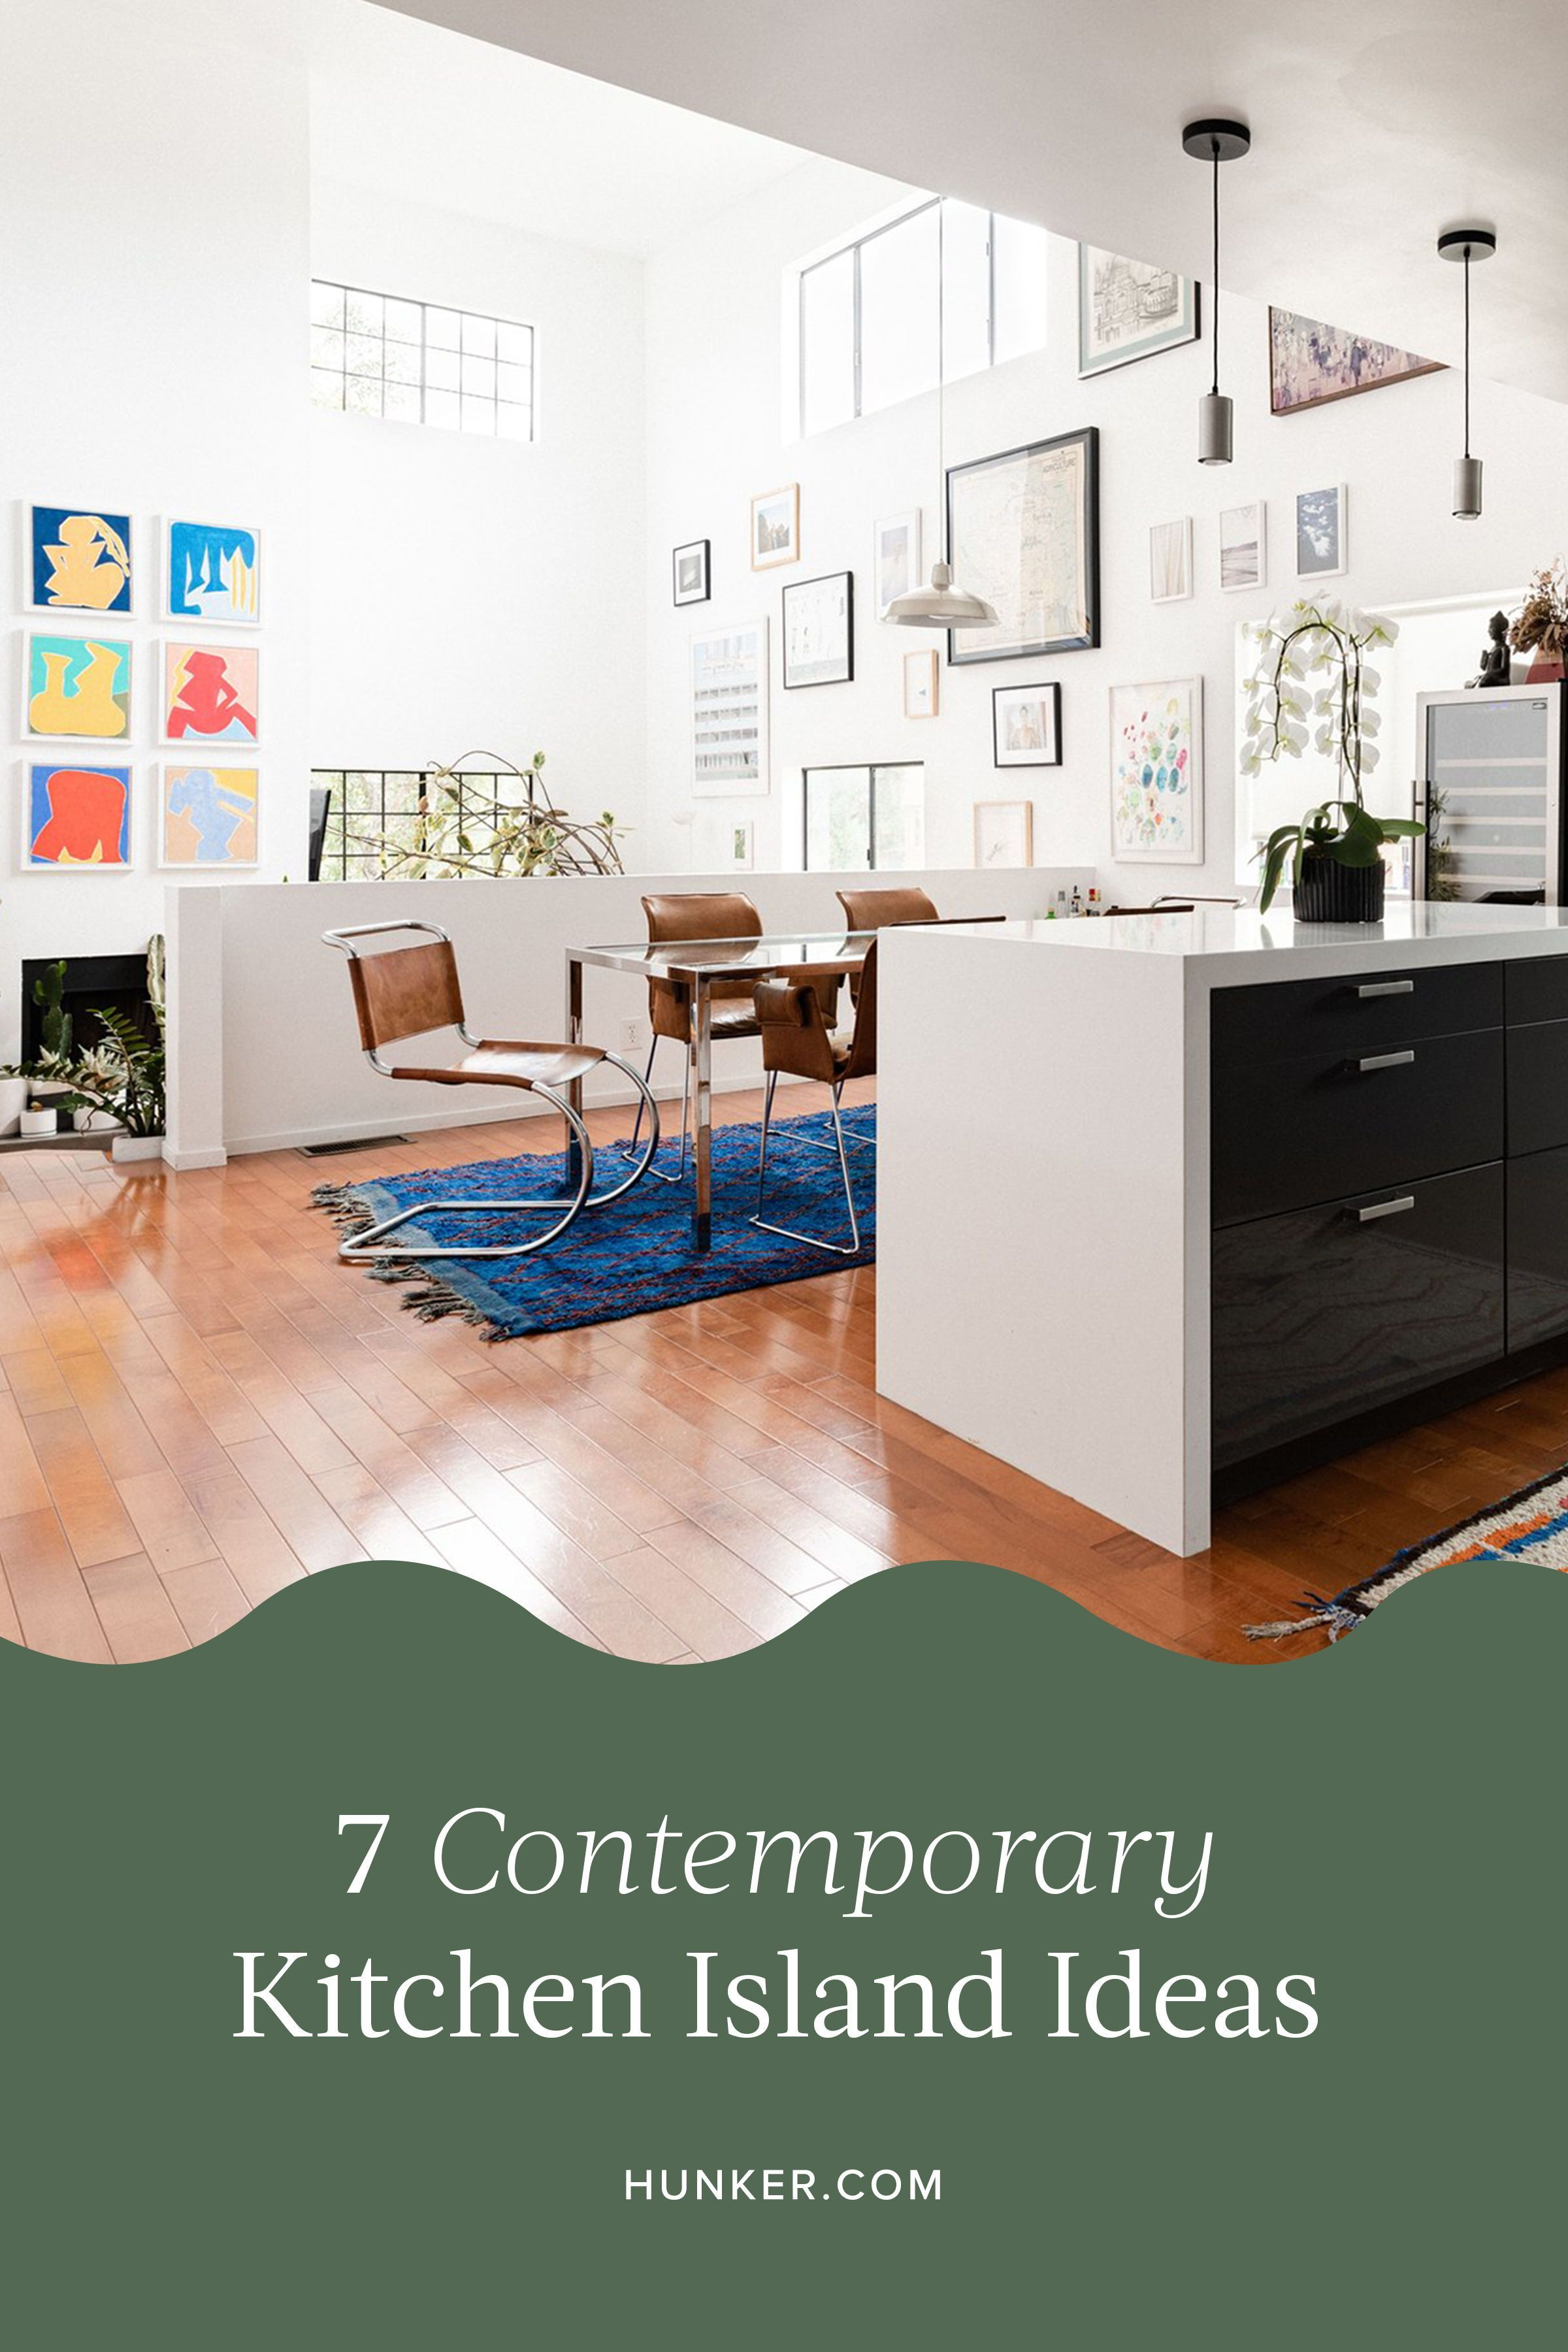 7 contemporary kitchen island ideas any novice or home chef will love hunker in 2020 contemporary kitchen island contemporary kitchen blue accent walls pinterest